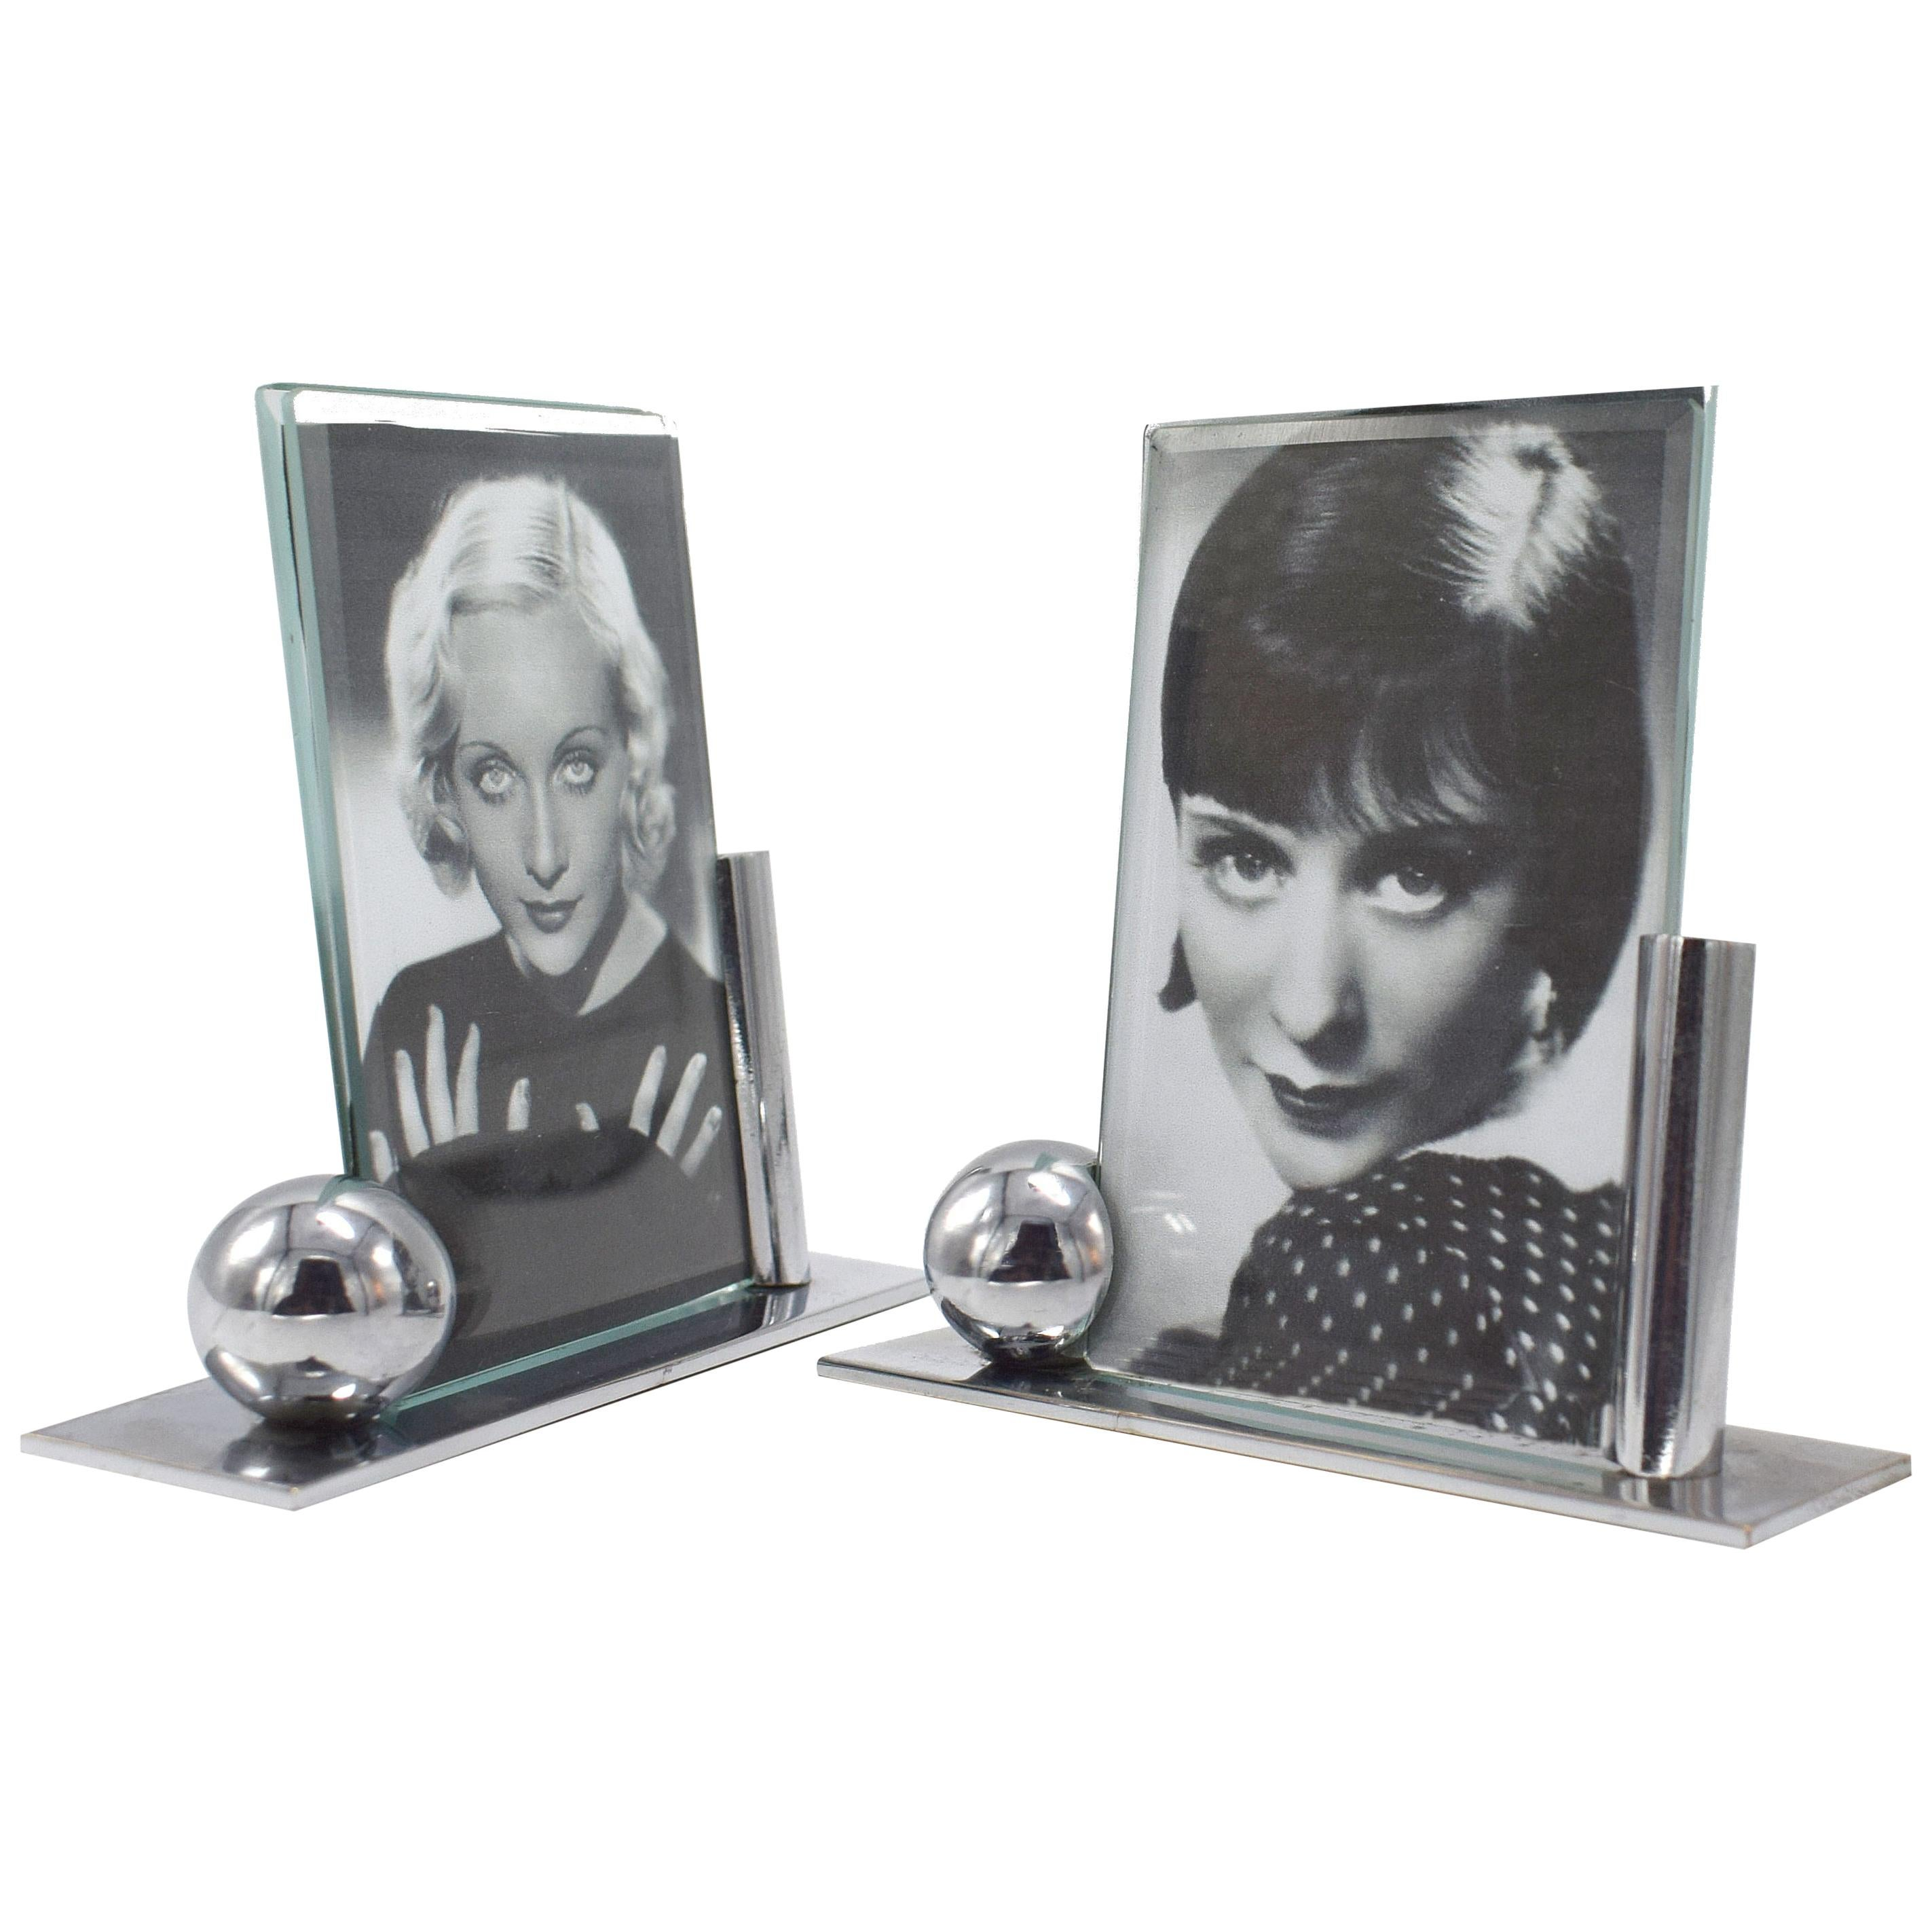 Art Deco Modernist Pair of Matching Chrome Picture Frames, circa 1930s